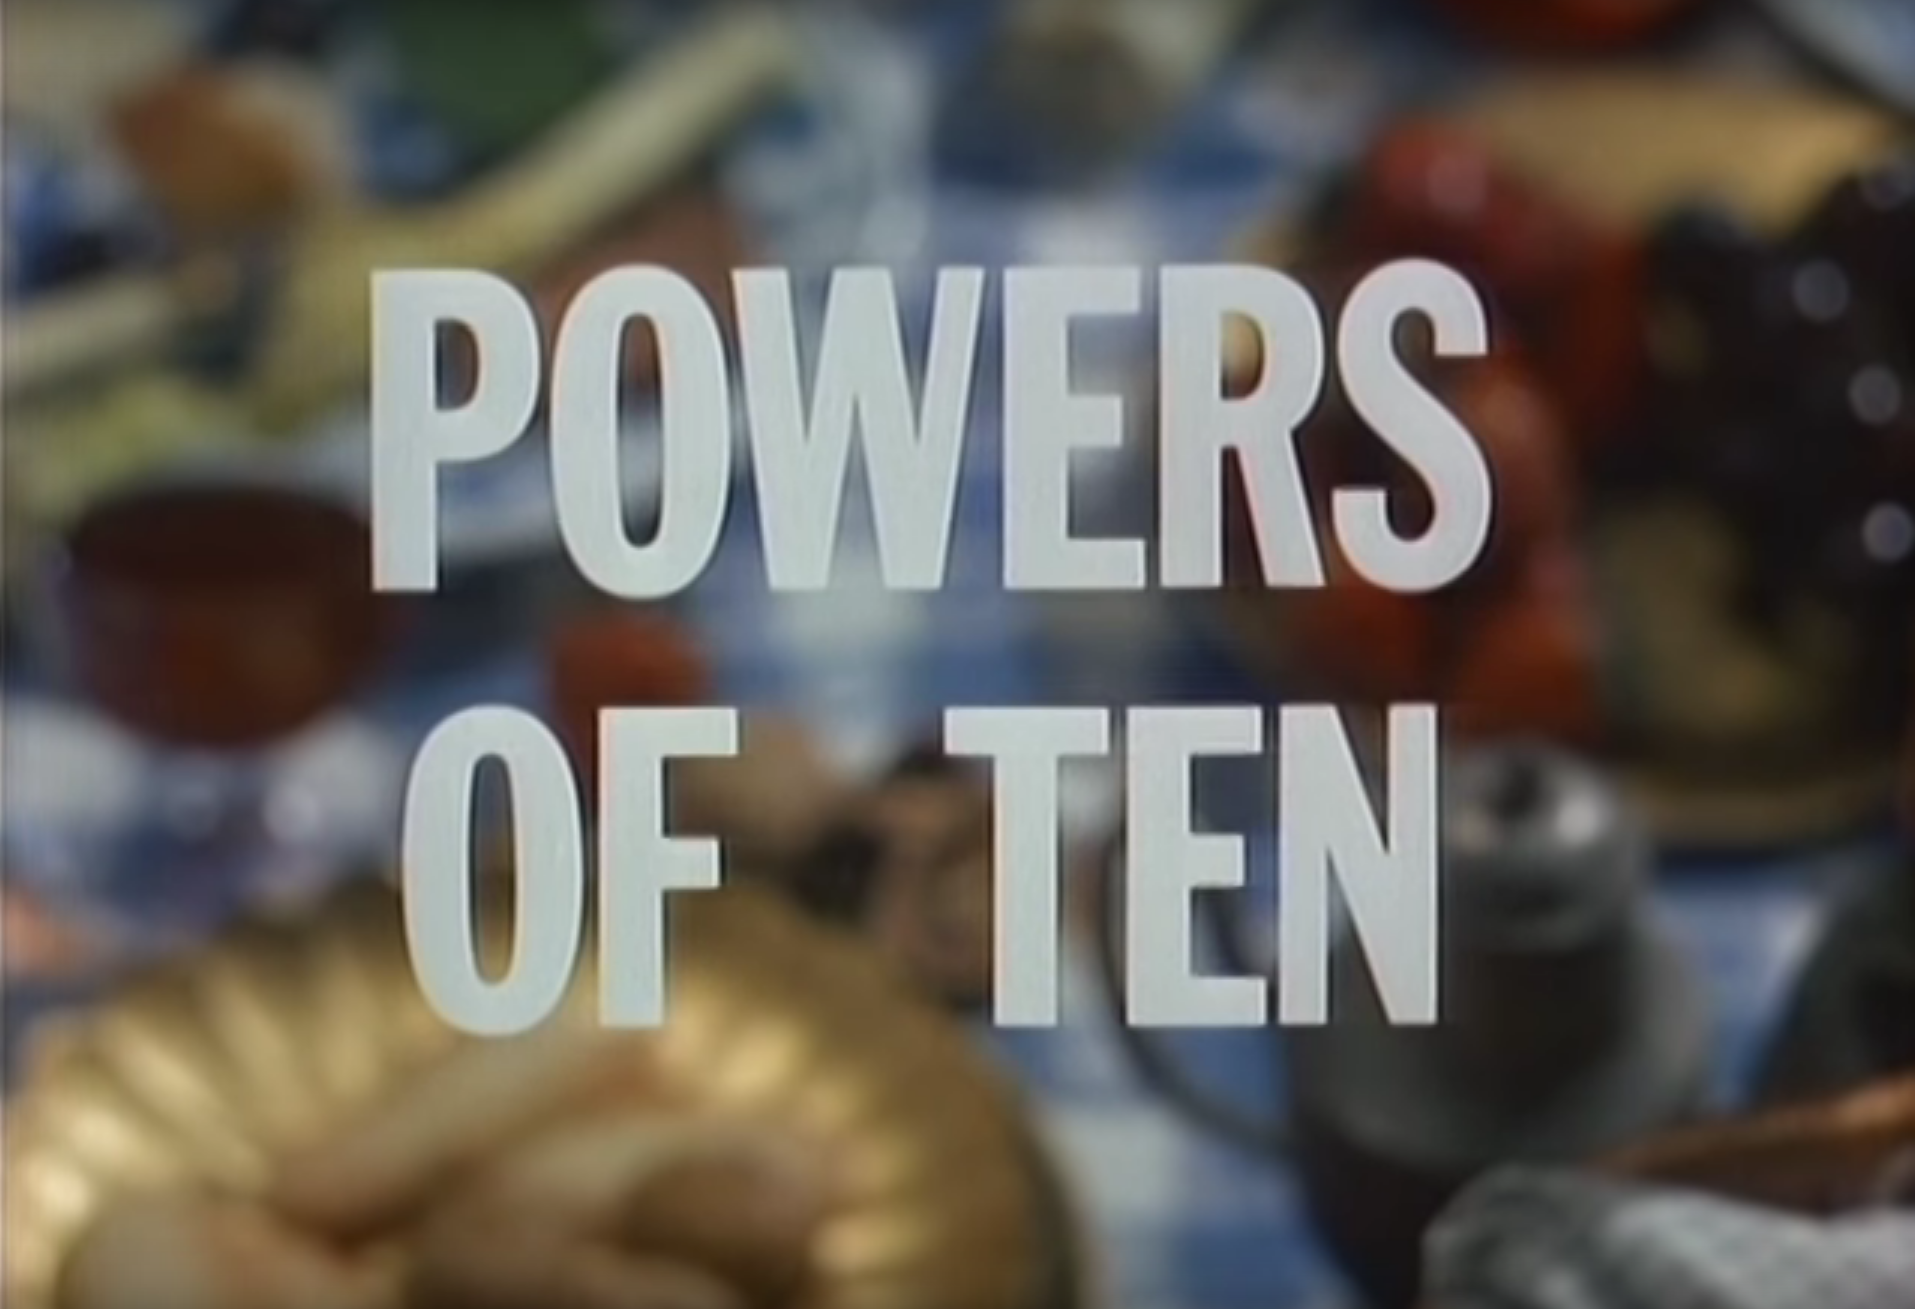 postPZI/media/powers-of-ten.png